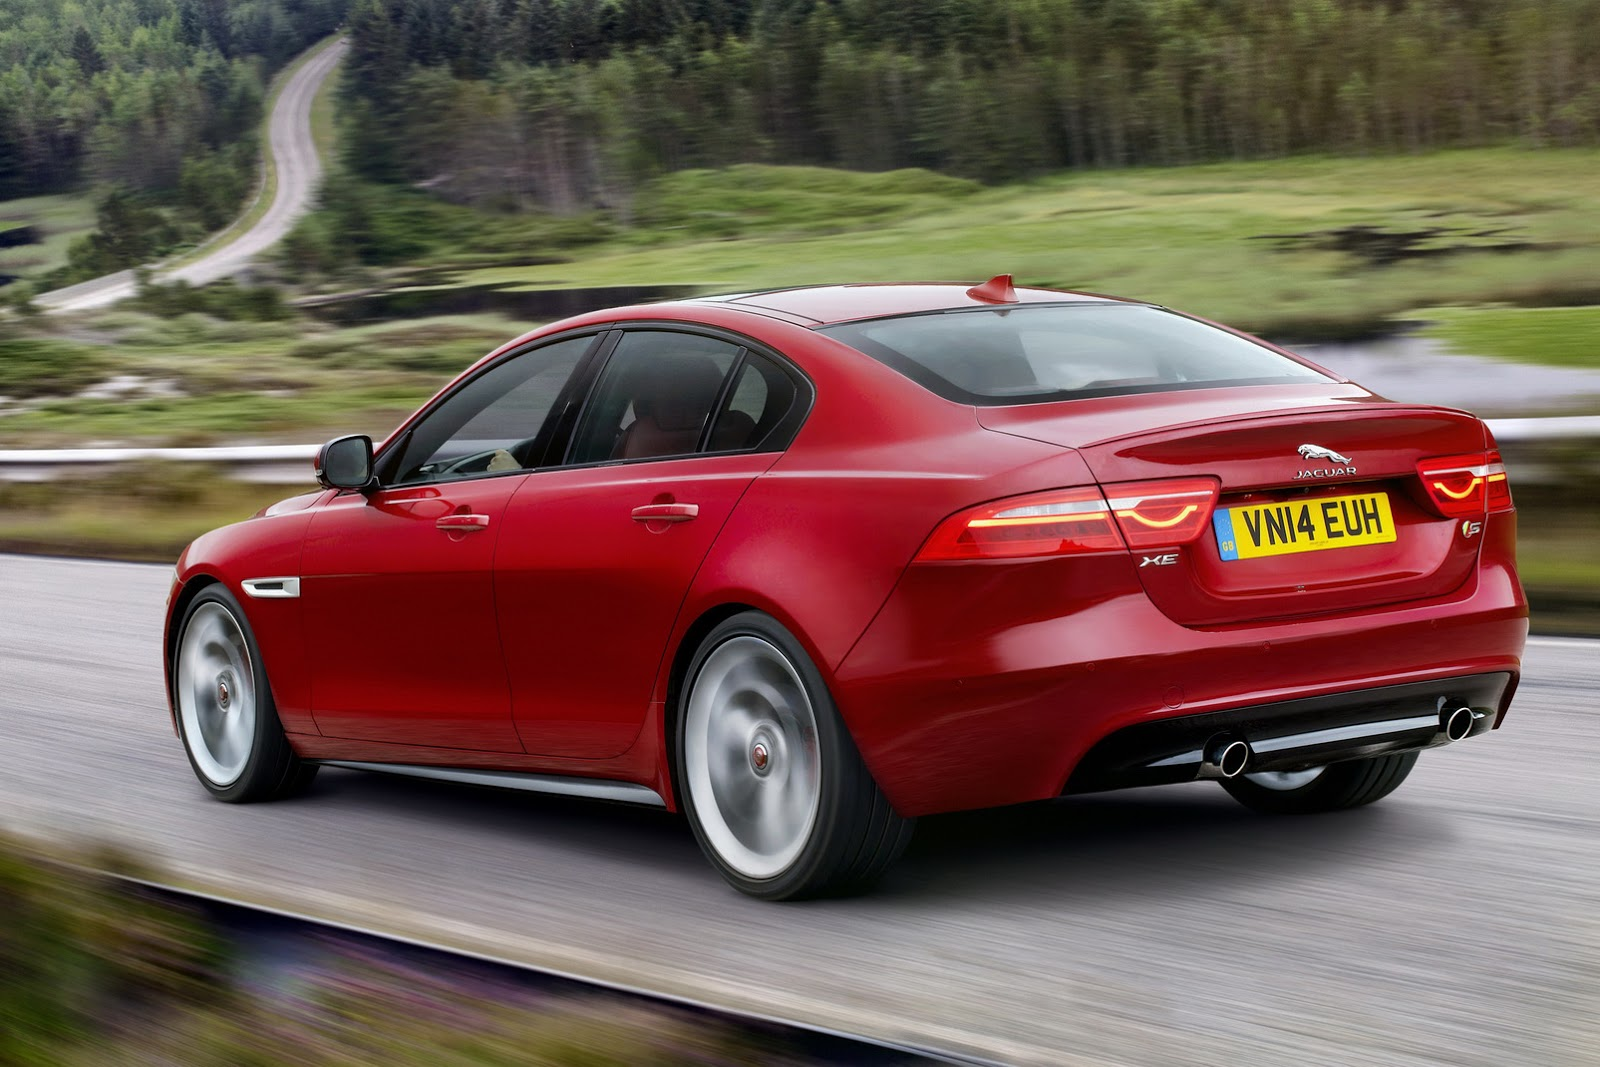 New-2016-Jaguar-XE-officially-revealed-Images-and-details-39.jpg.pagespeed.ce.Ap0fL8ogxH